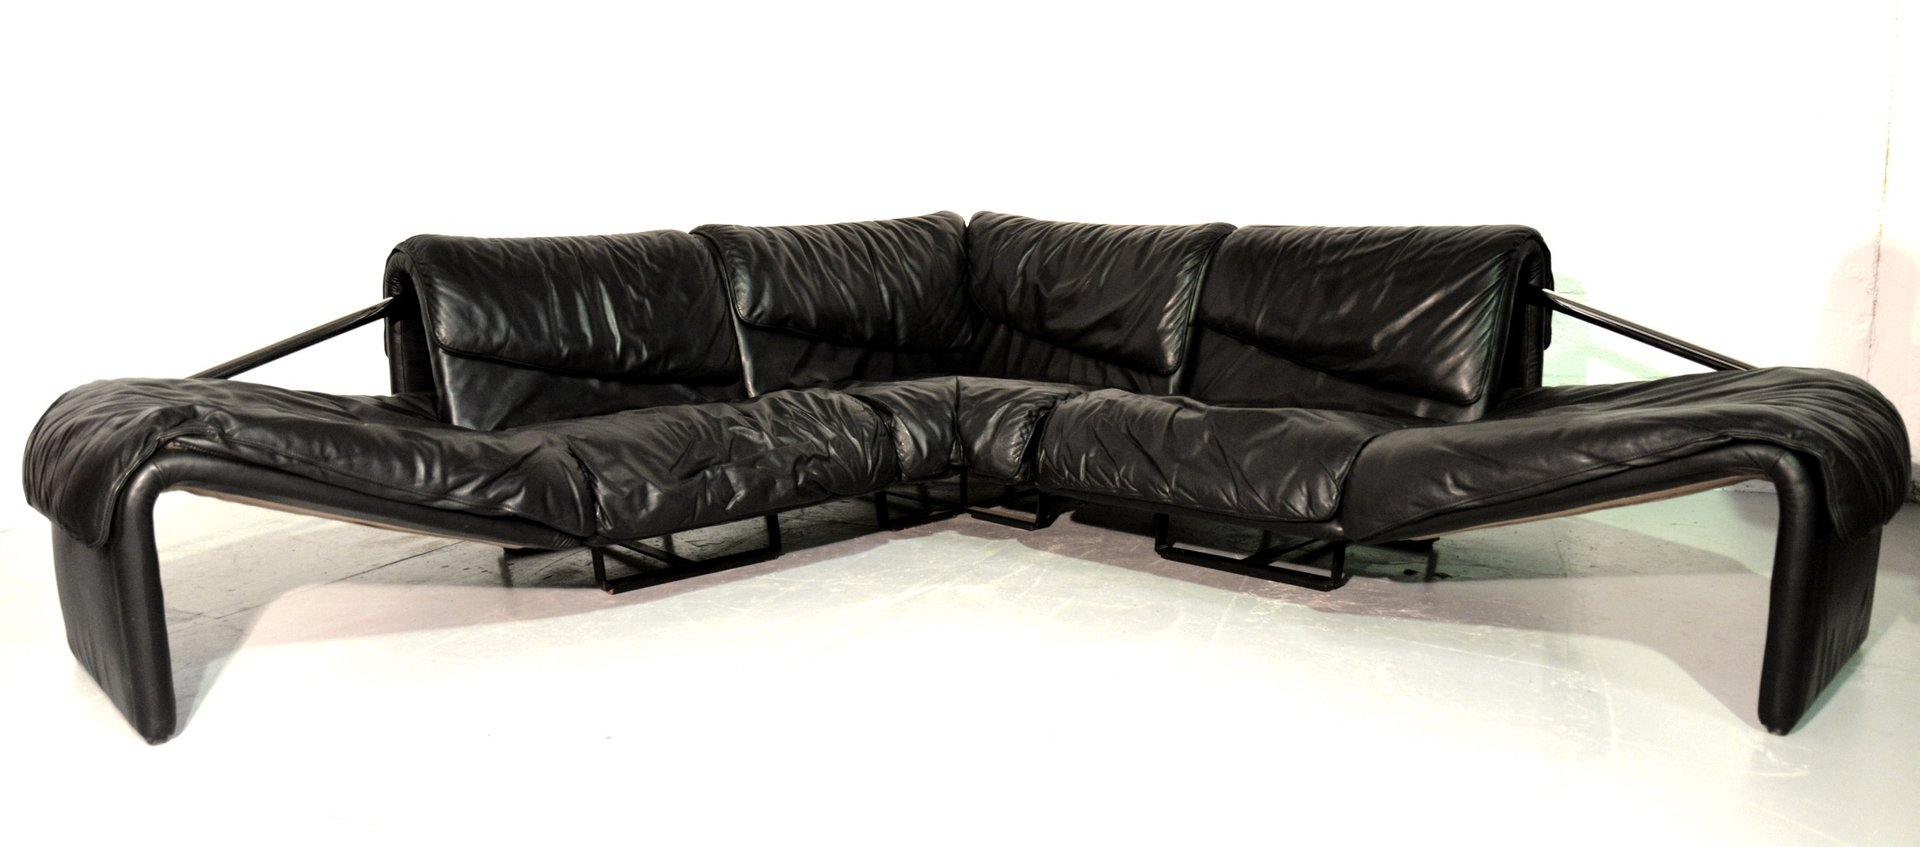 inmotion ecksofa aus leder von de sede 1970er bei pamono. Black Bedroom Furniture Sets. Home Design Ideas